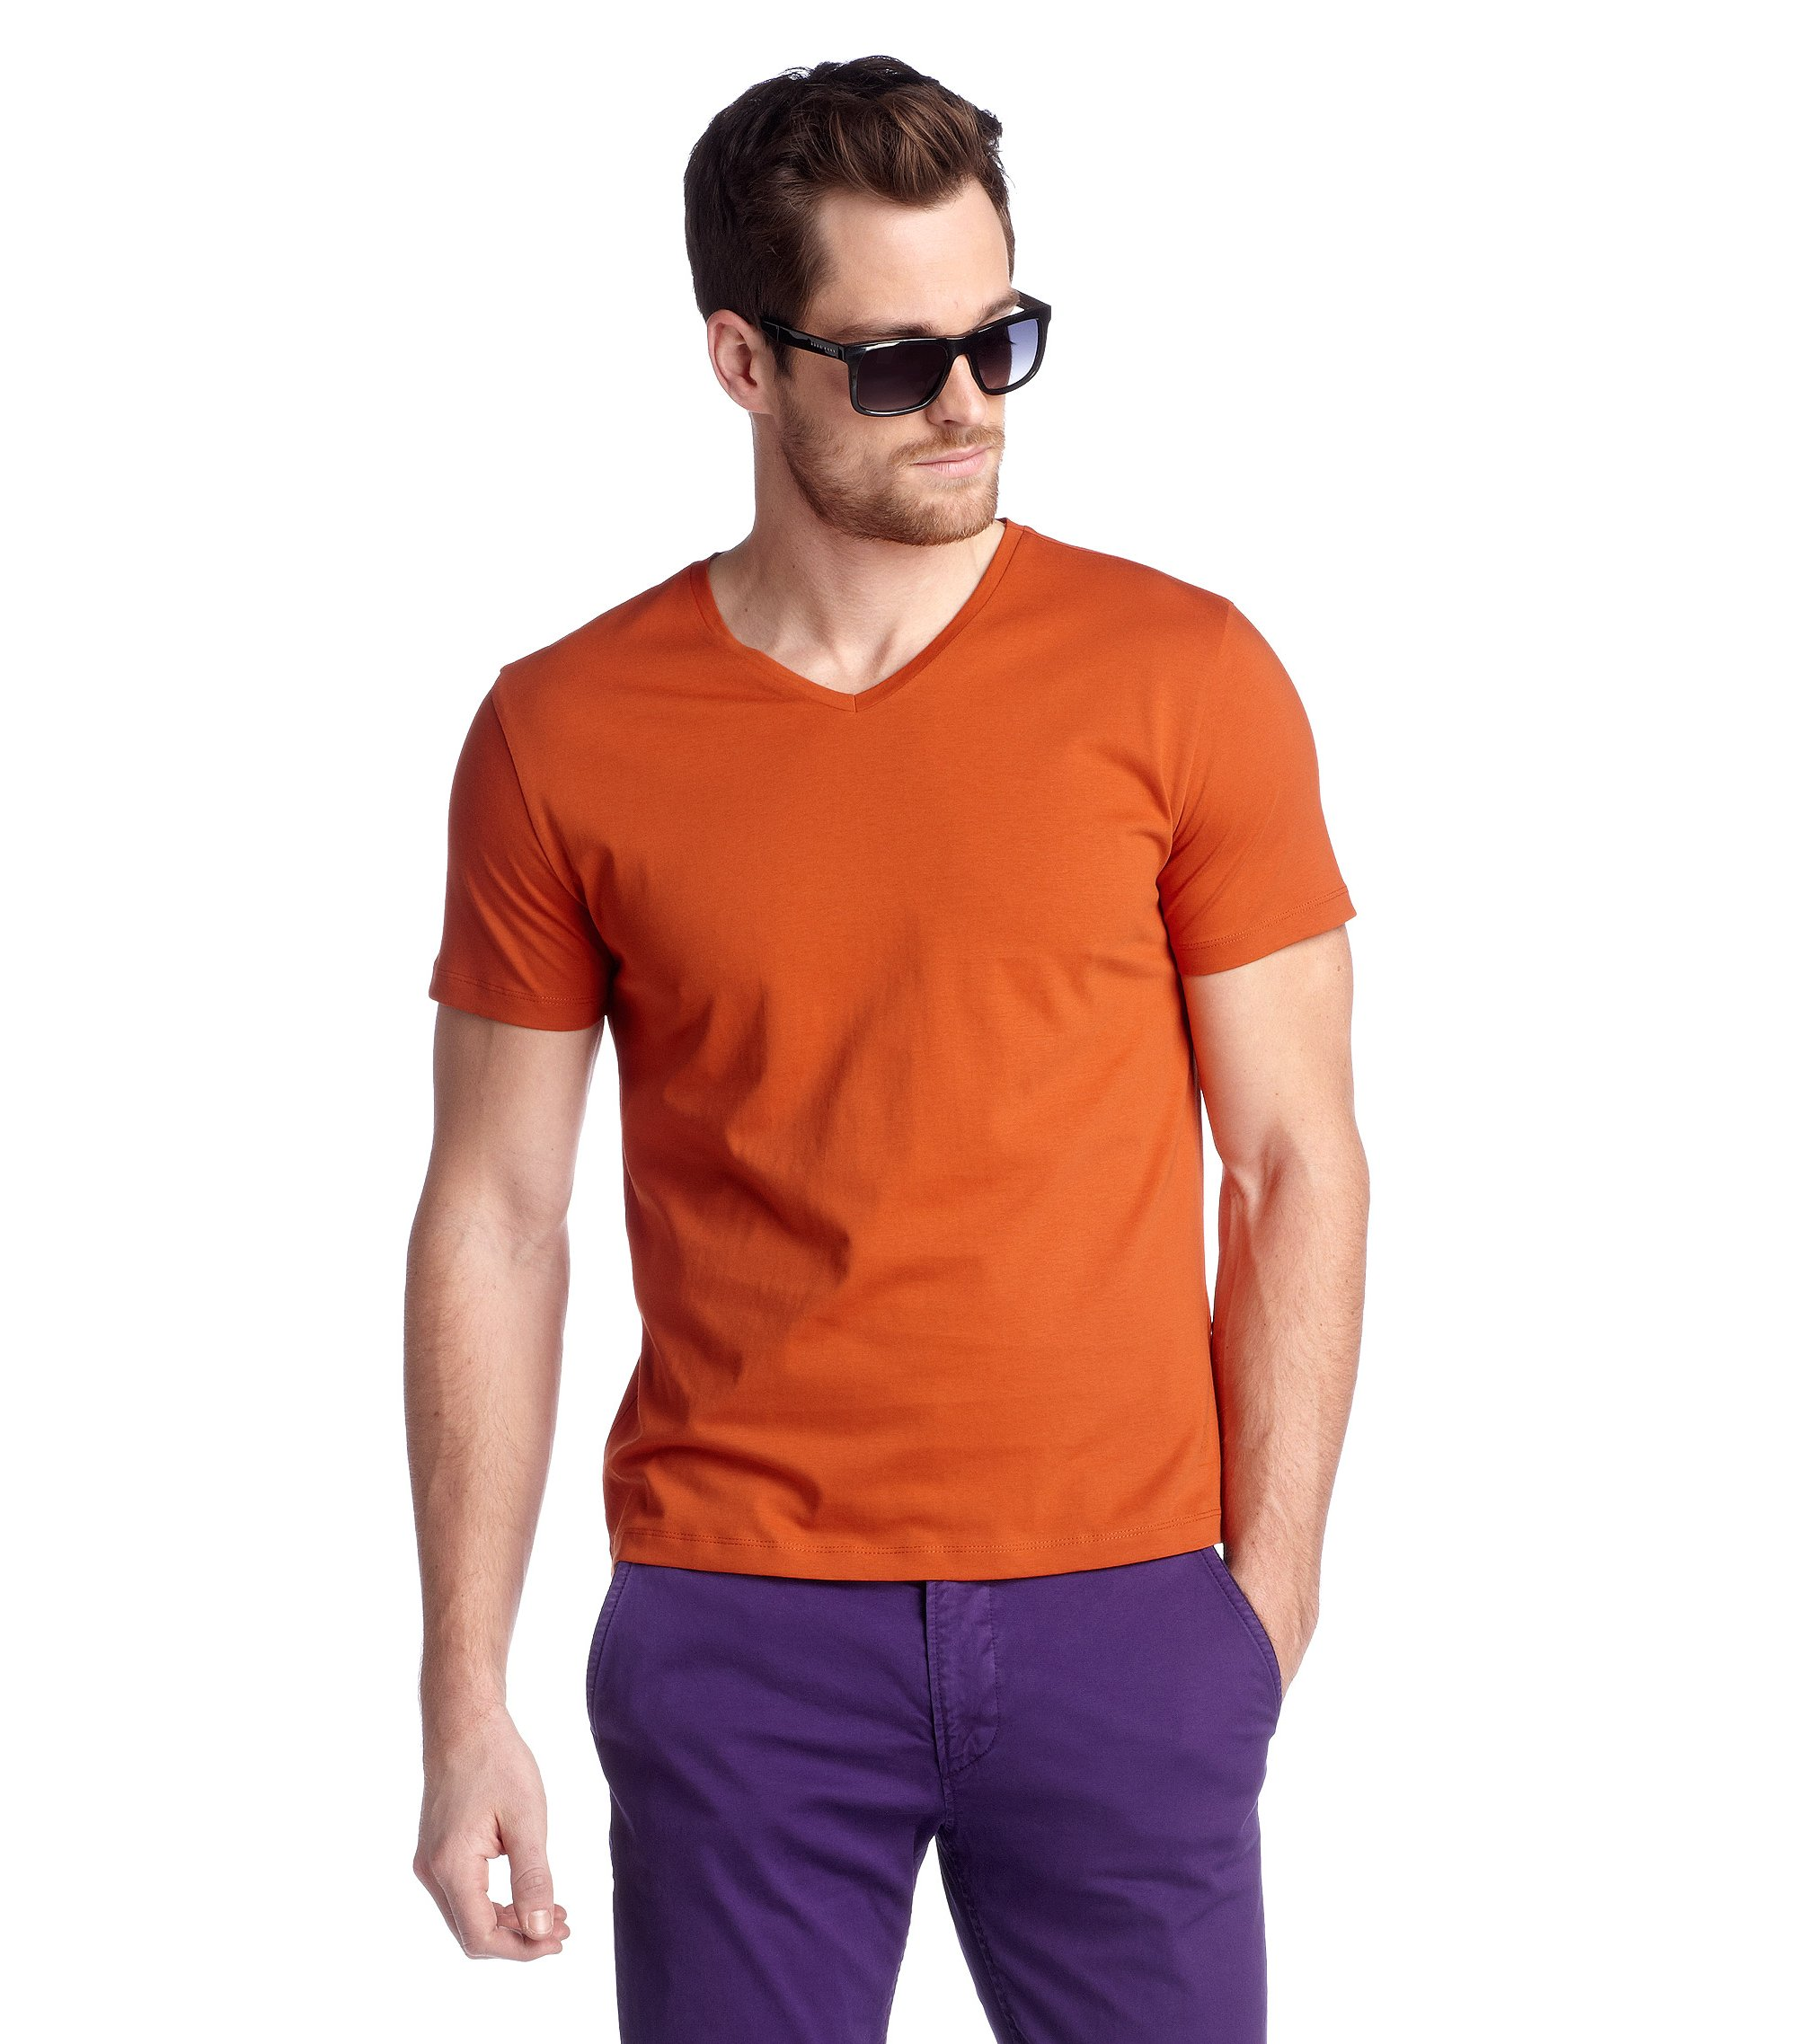 T-shirt 'Canistro 80 Modern Essential', Orange